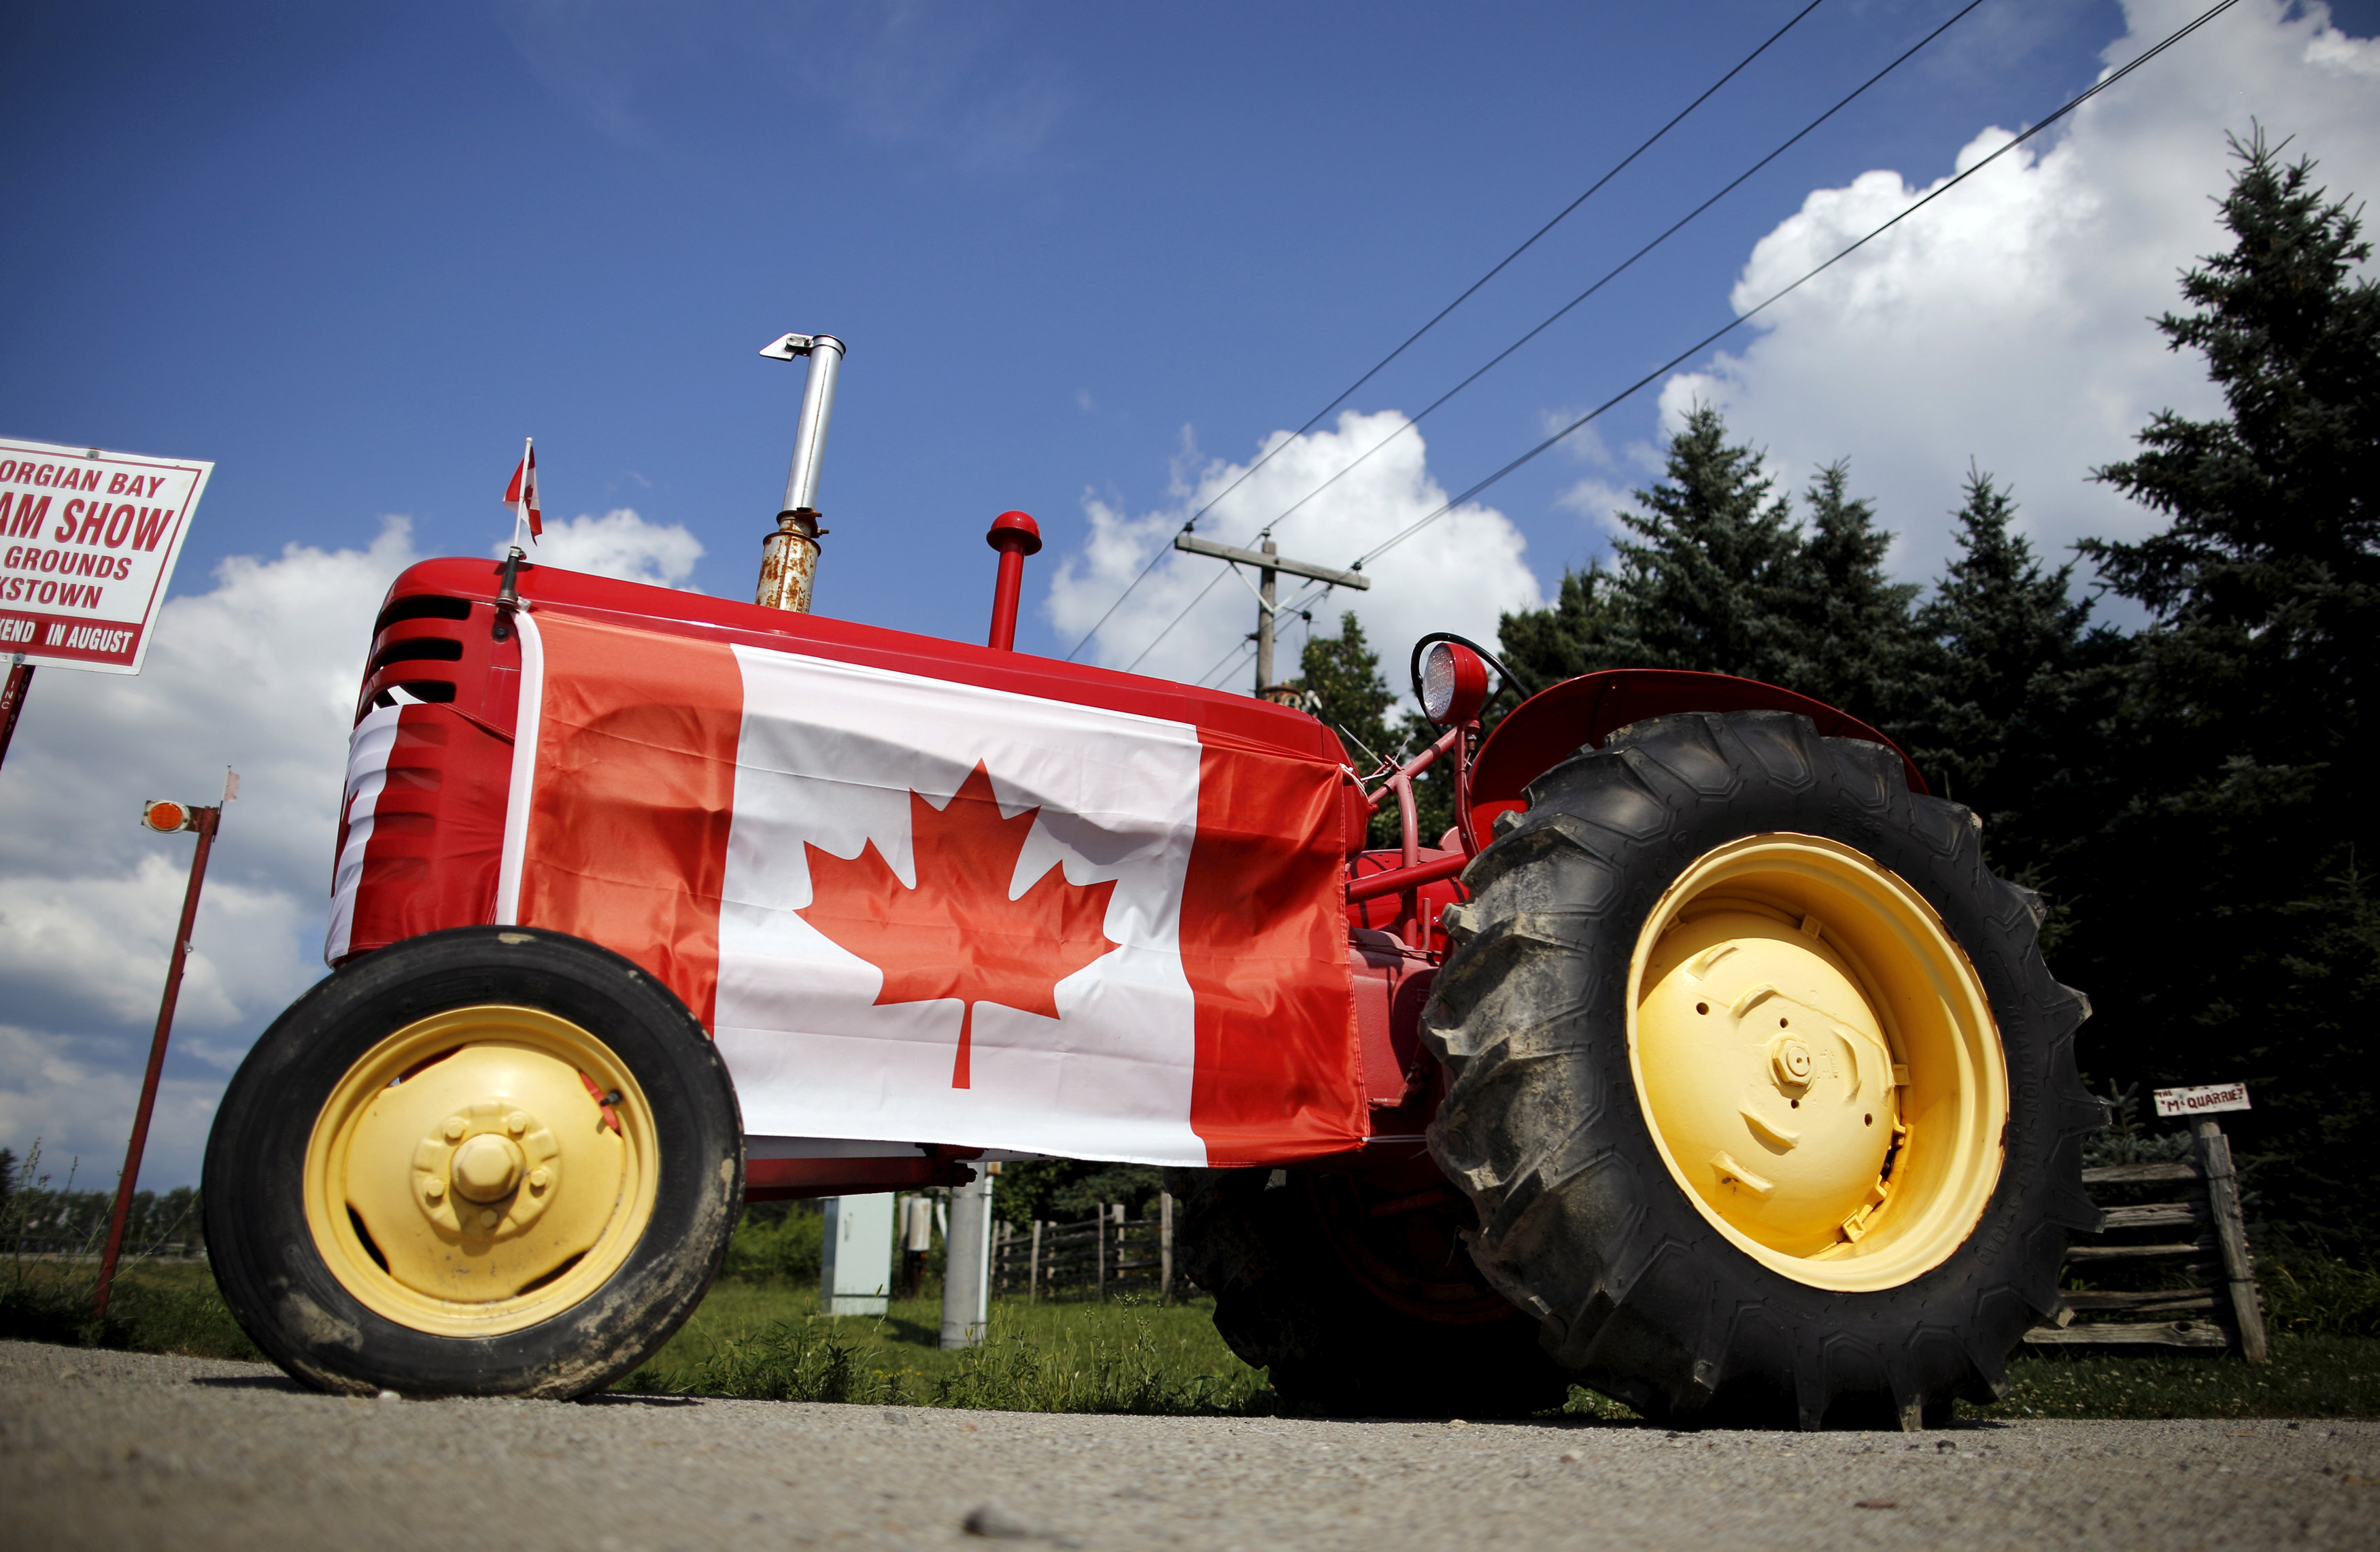 FILE PHOTO: An old tractor sporting a Canadian national flag is seen parked in the rural township of Oro-Medonte, Ontario July 26, 2015. REUTERS/Chris Helgren/File Photo